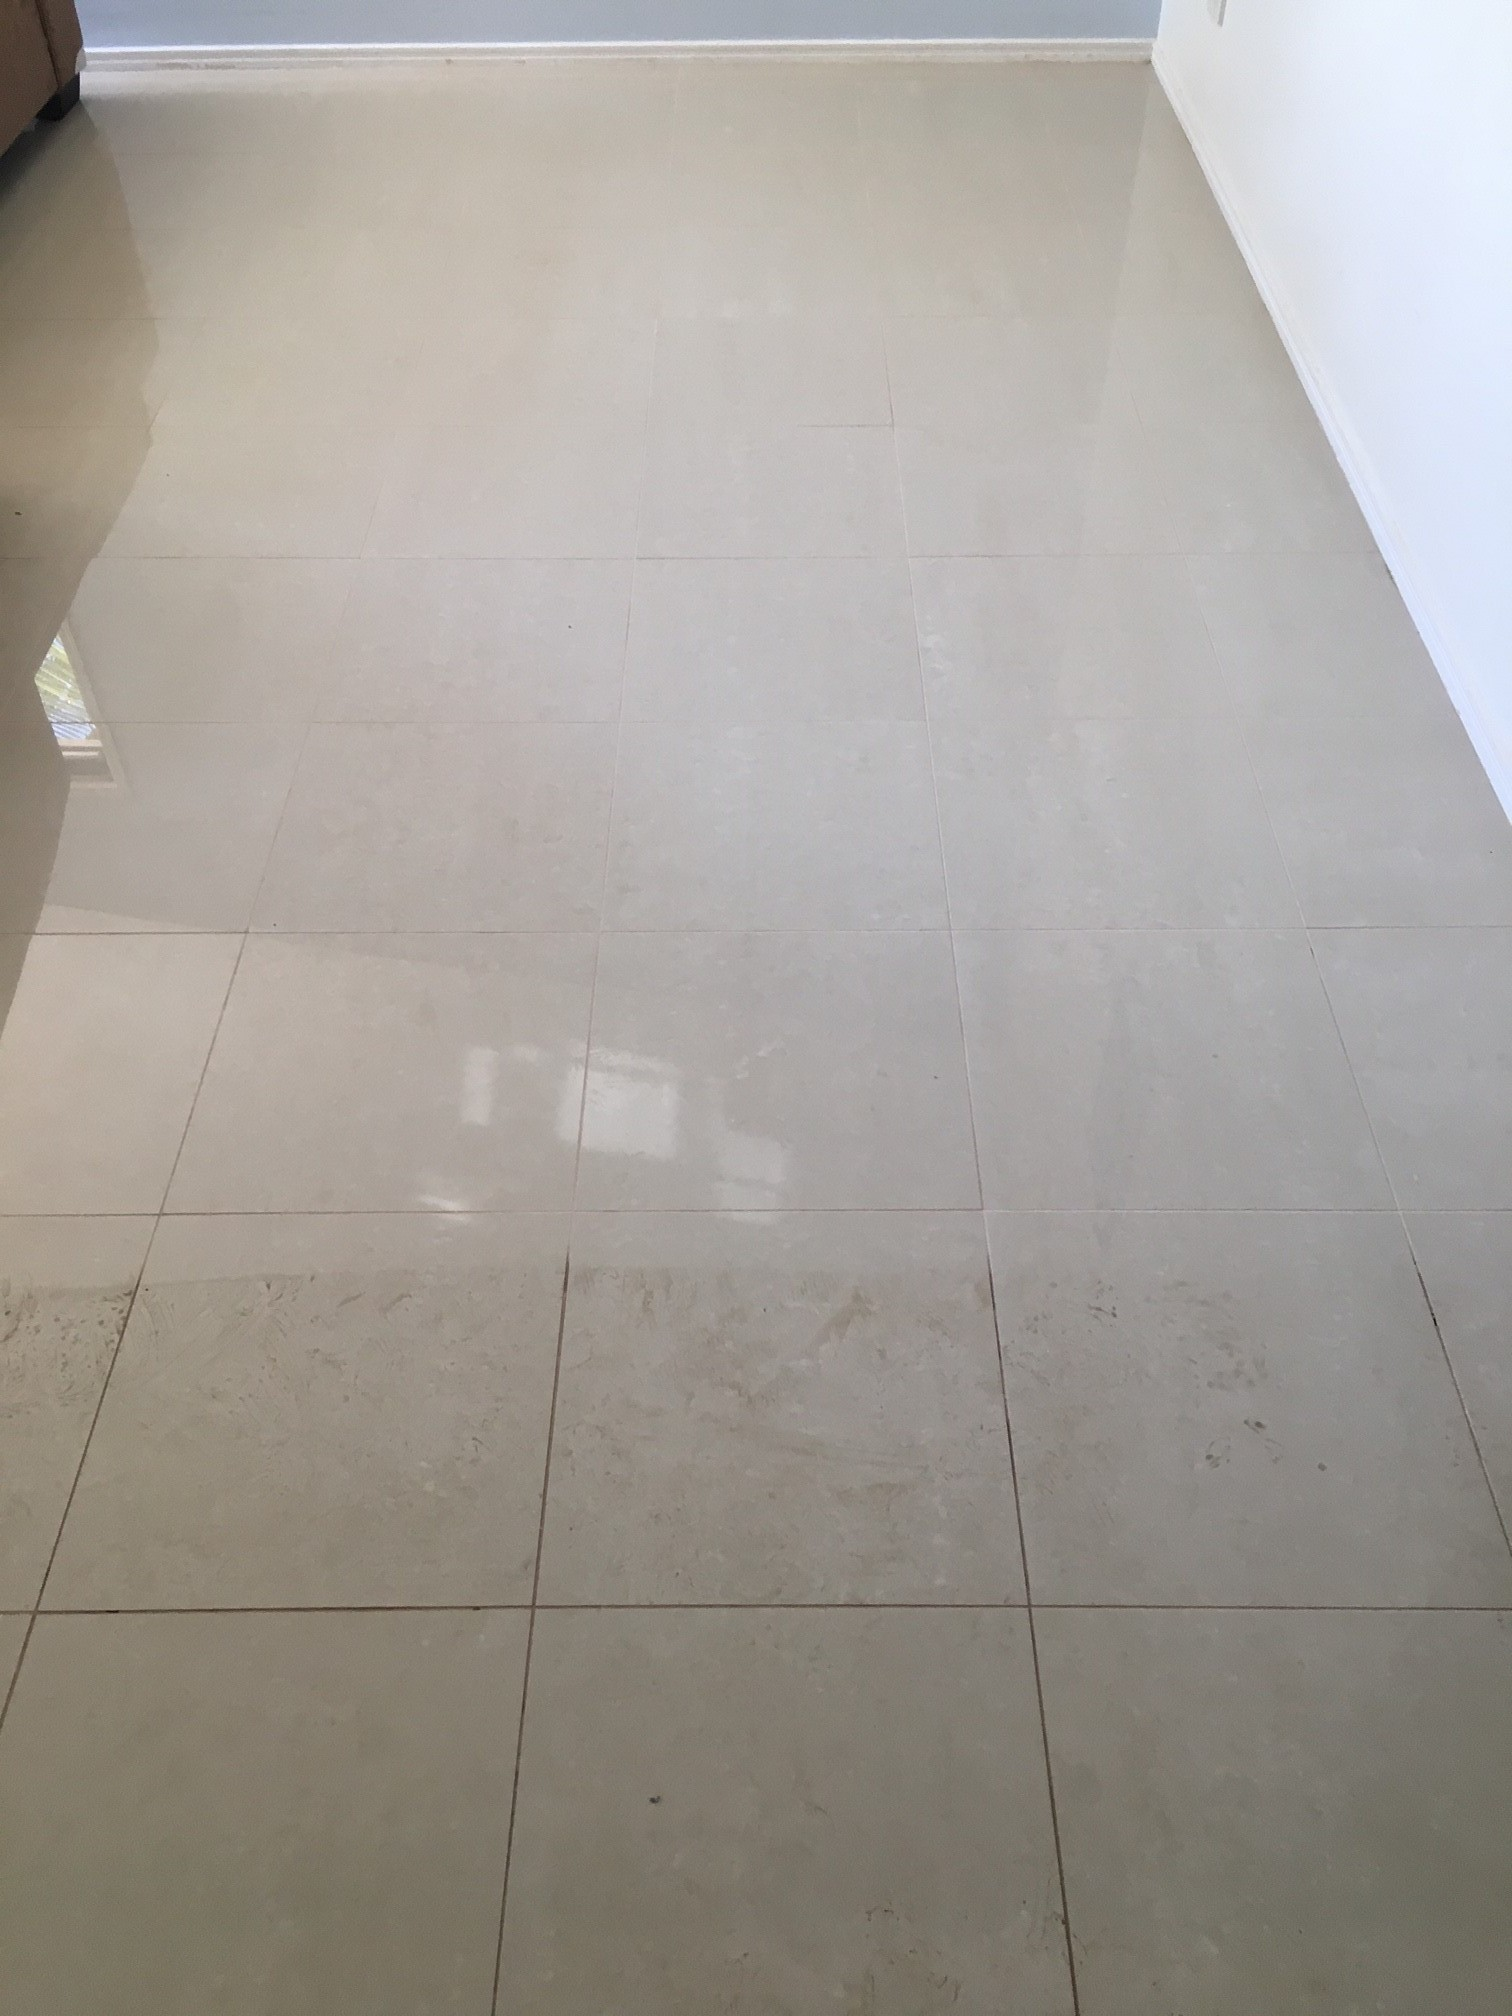 Tile And Grout Cleaning Bfs Carpet Cleaning Pest Control